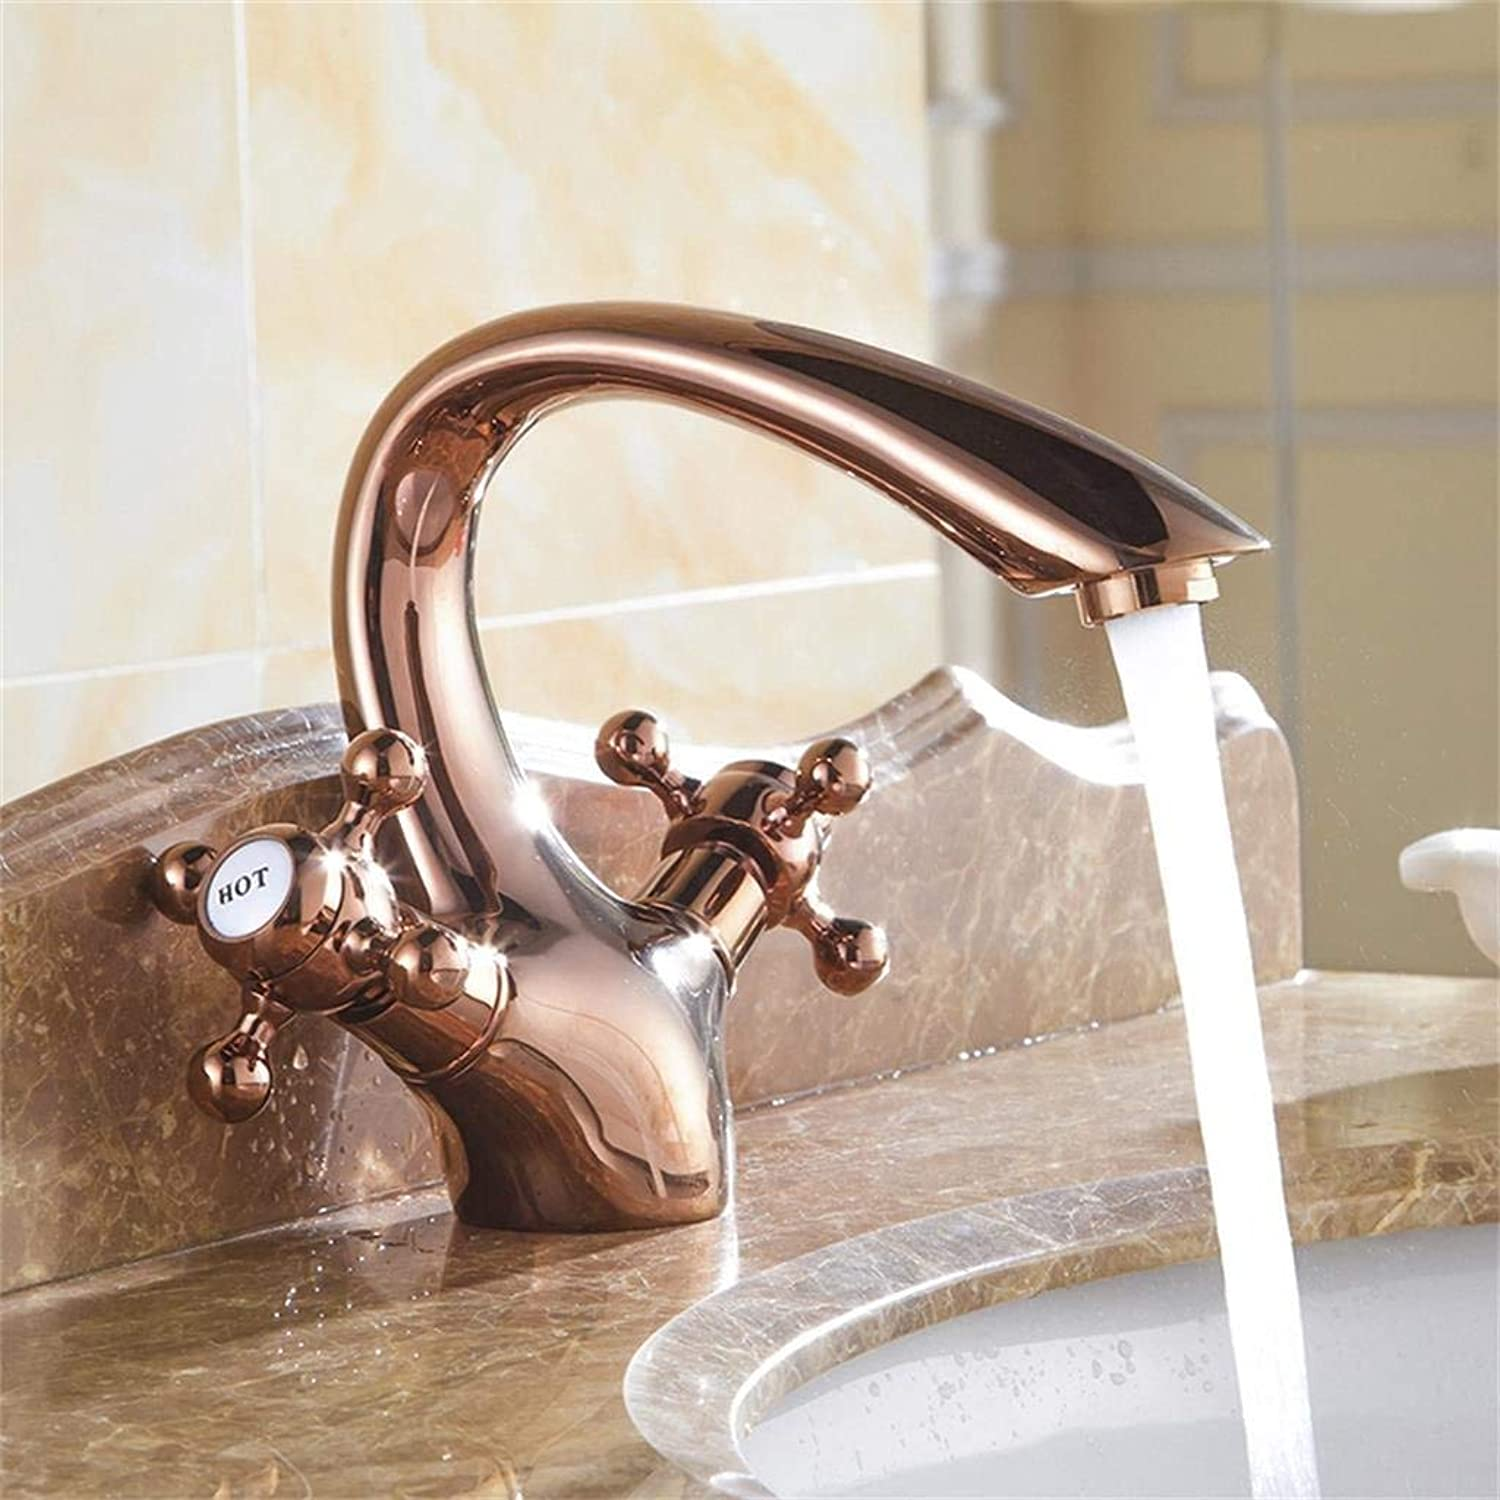 DYR Faucet Antique Brass pink gold Faucet, Retro Single-hole Hot and Cold Water Tap Sink Faucet